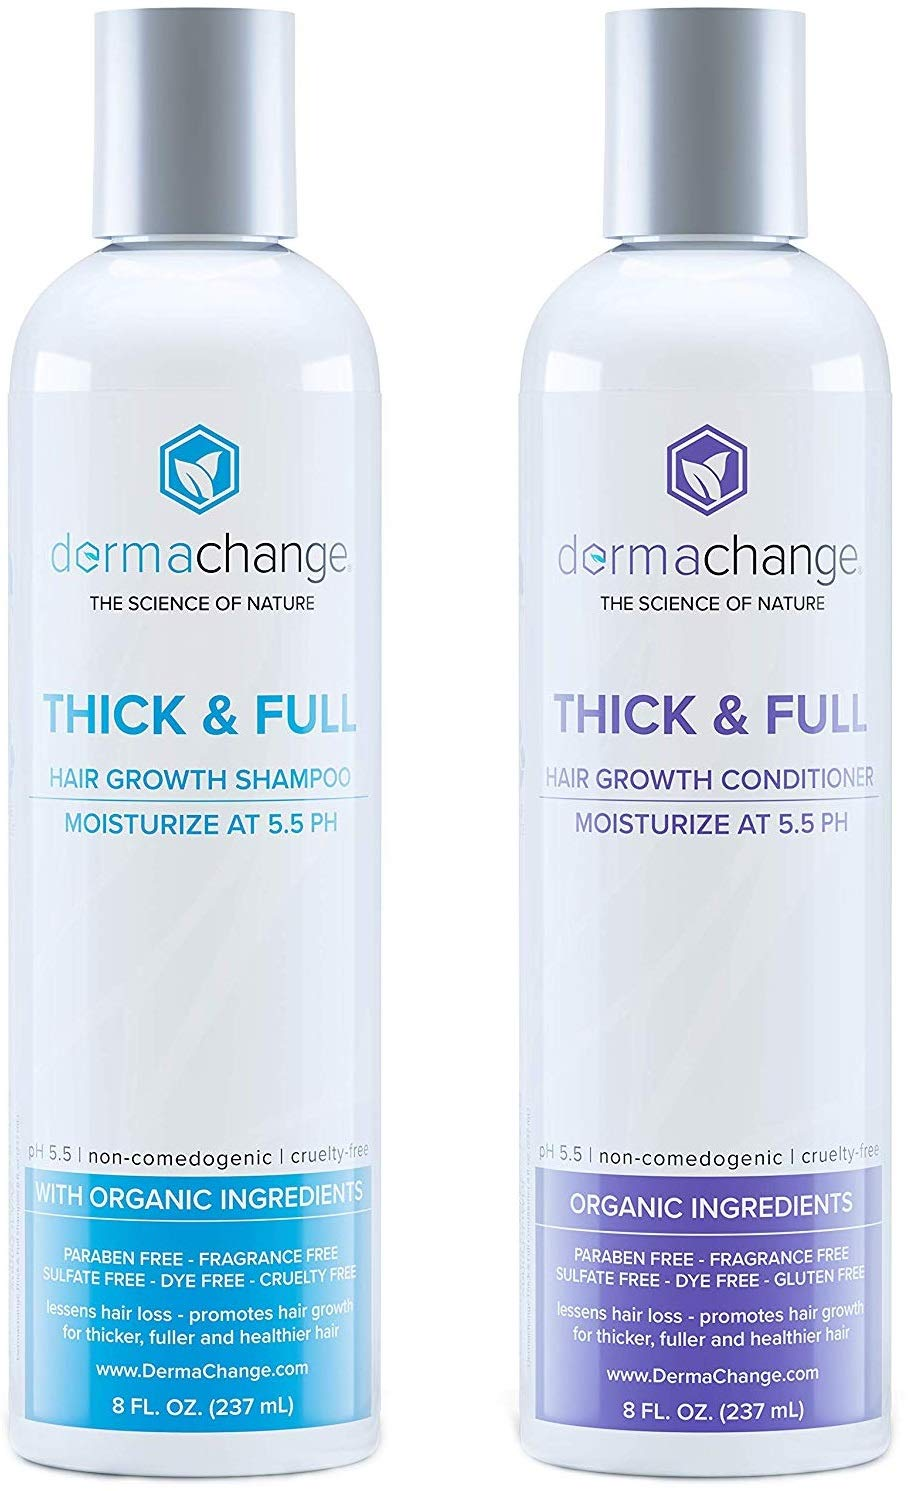 Amazon Com Natural Vegan Hair Growth Shampoo And Conditioner Set Natural Hair Regrowth With Vitamins Hair Loss Thinning Products Curly Or Color Treated Hair For Men And